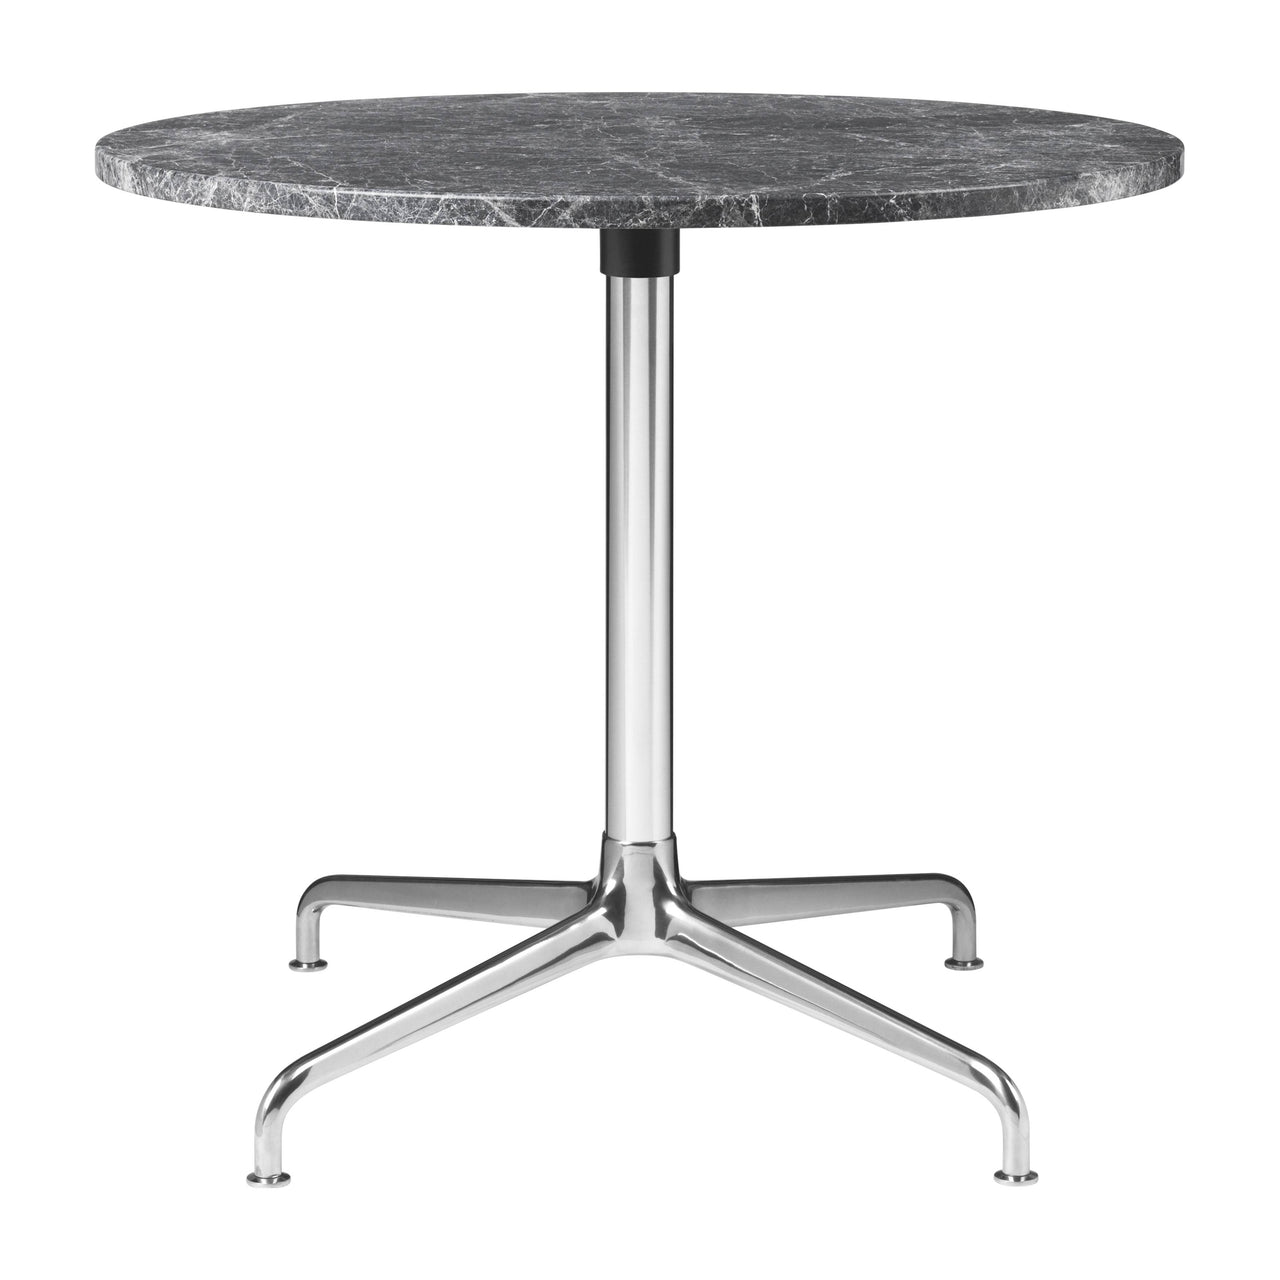 Beetle Lounge Table: Round + Small + Grey Emperador Marble + Polished Aluminum Base